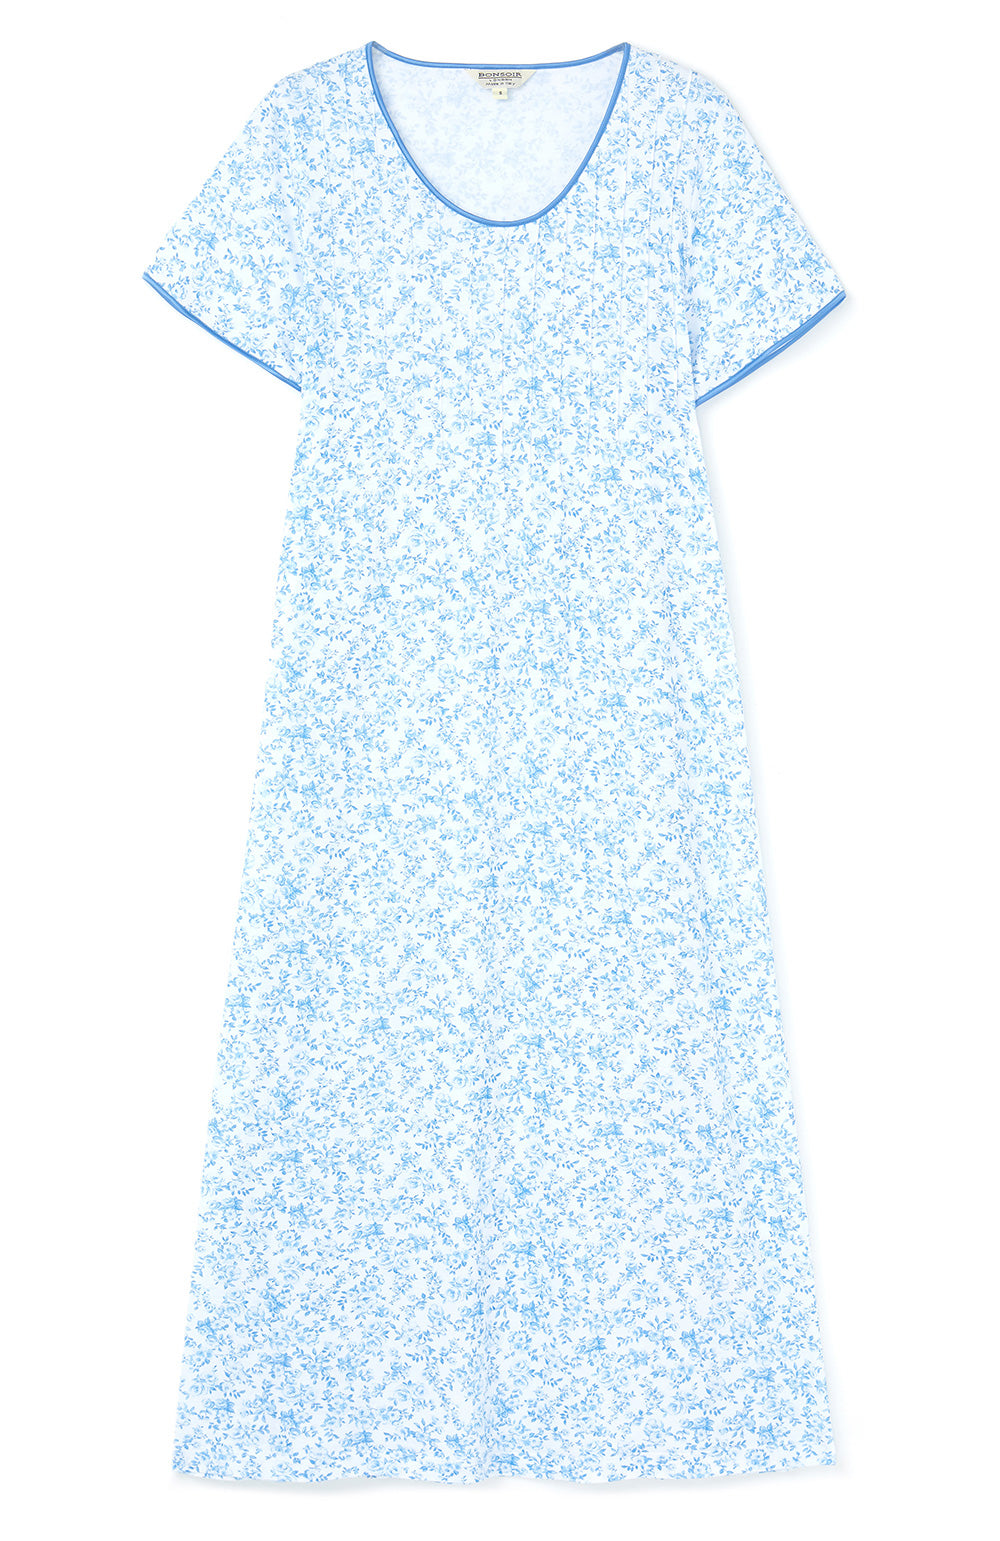 FRENCH PLEAT SHORT SLEEVE NIGHTDRESS - BLUE FLORAL | Bonsoir of London